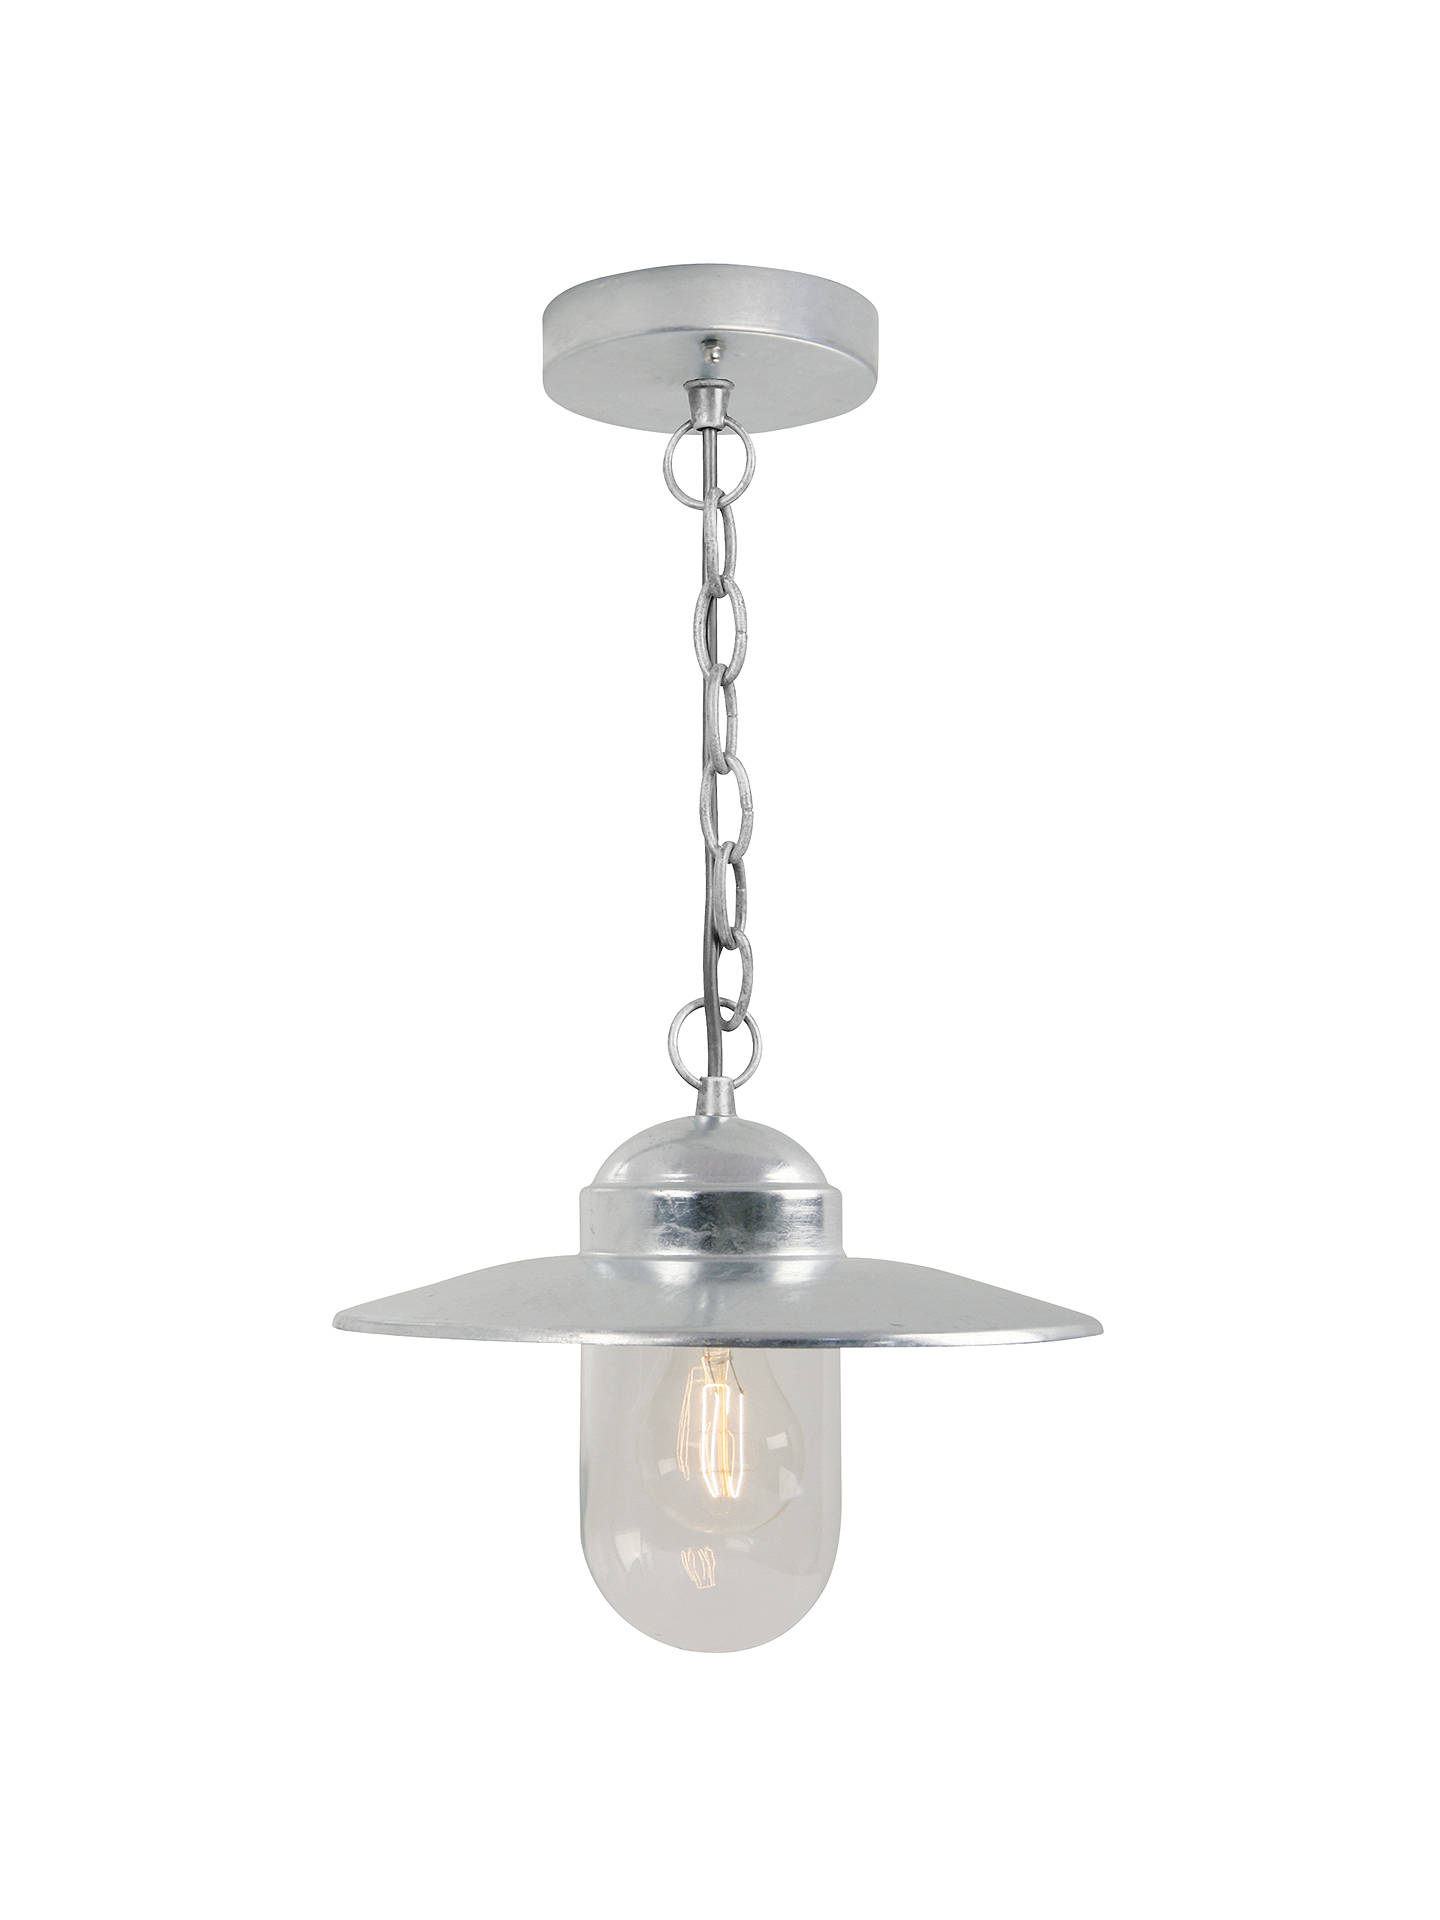 BuyNordlux Luxembourg Outdoor Pendant, Galvanized Steel Online at johnlewis.com